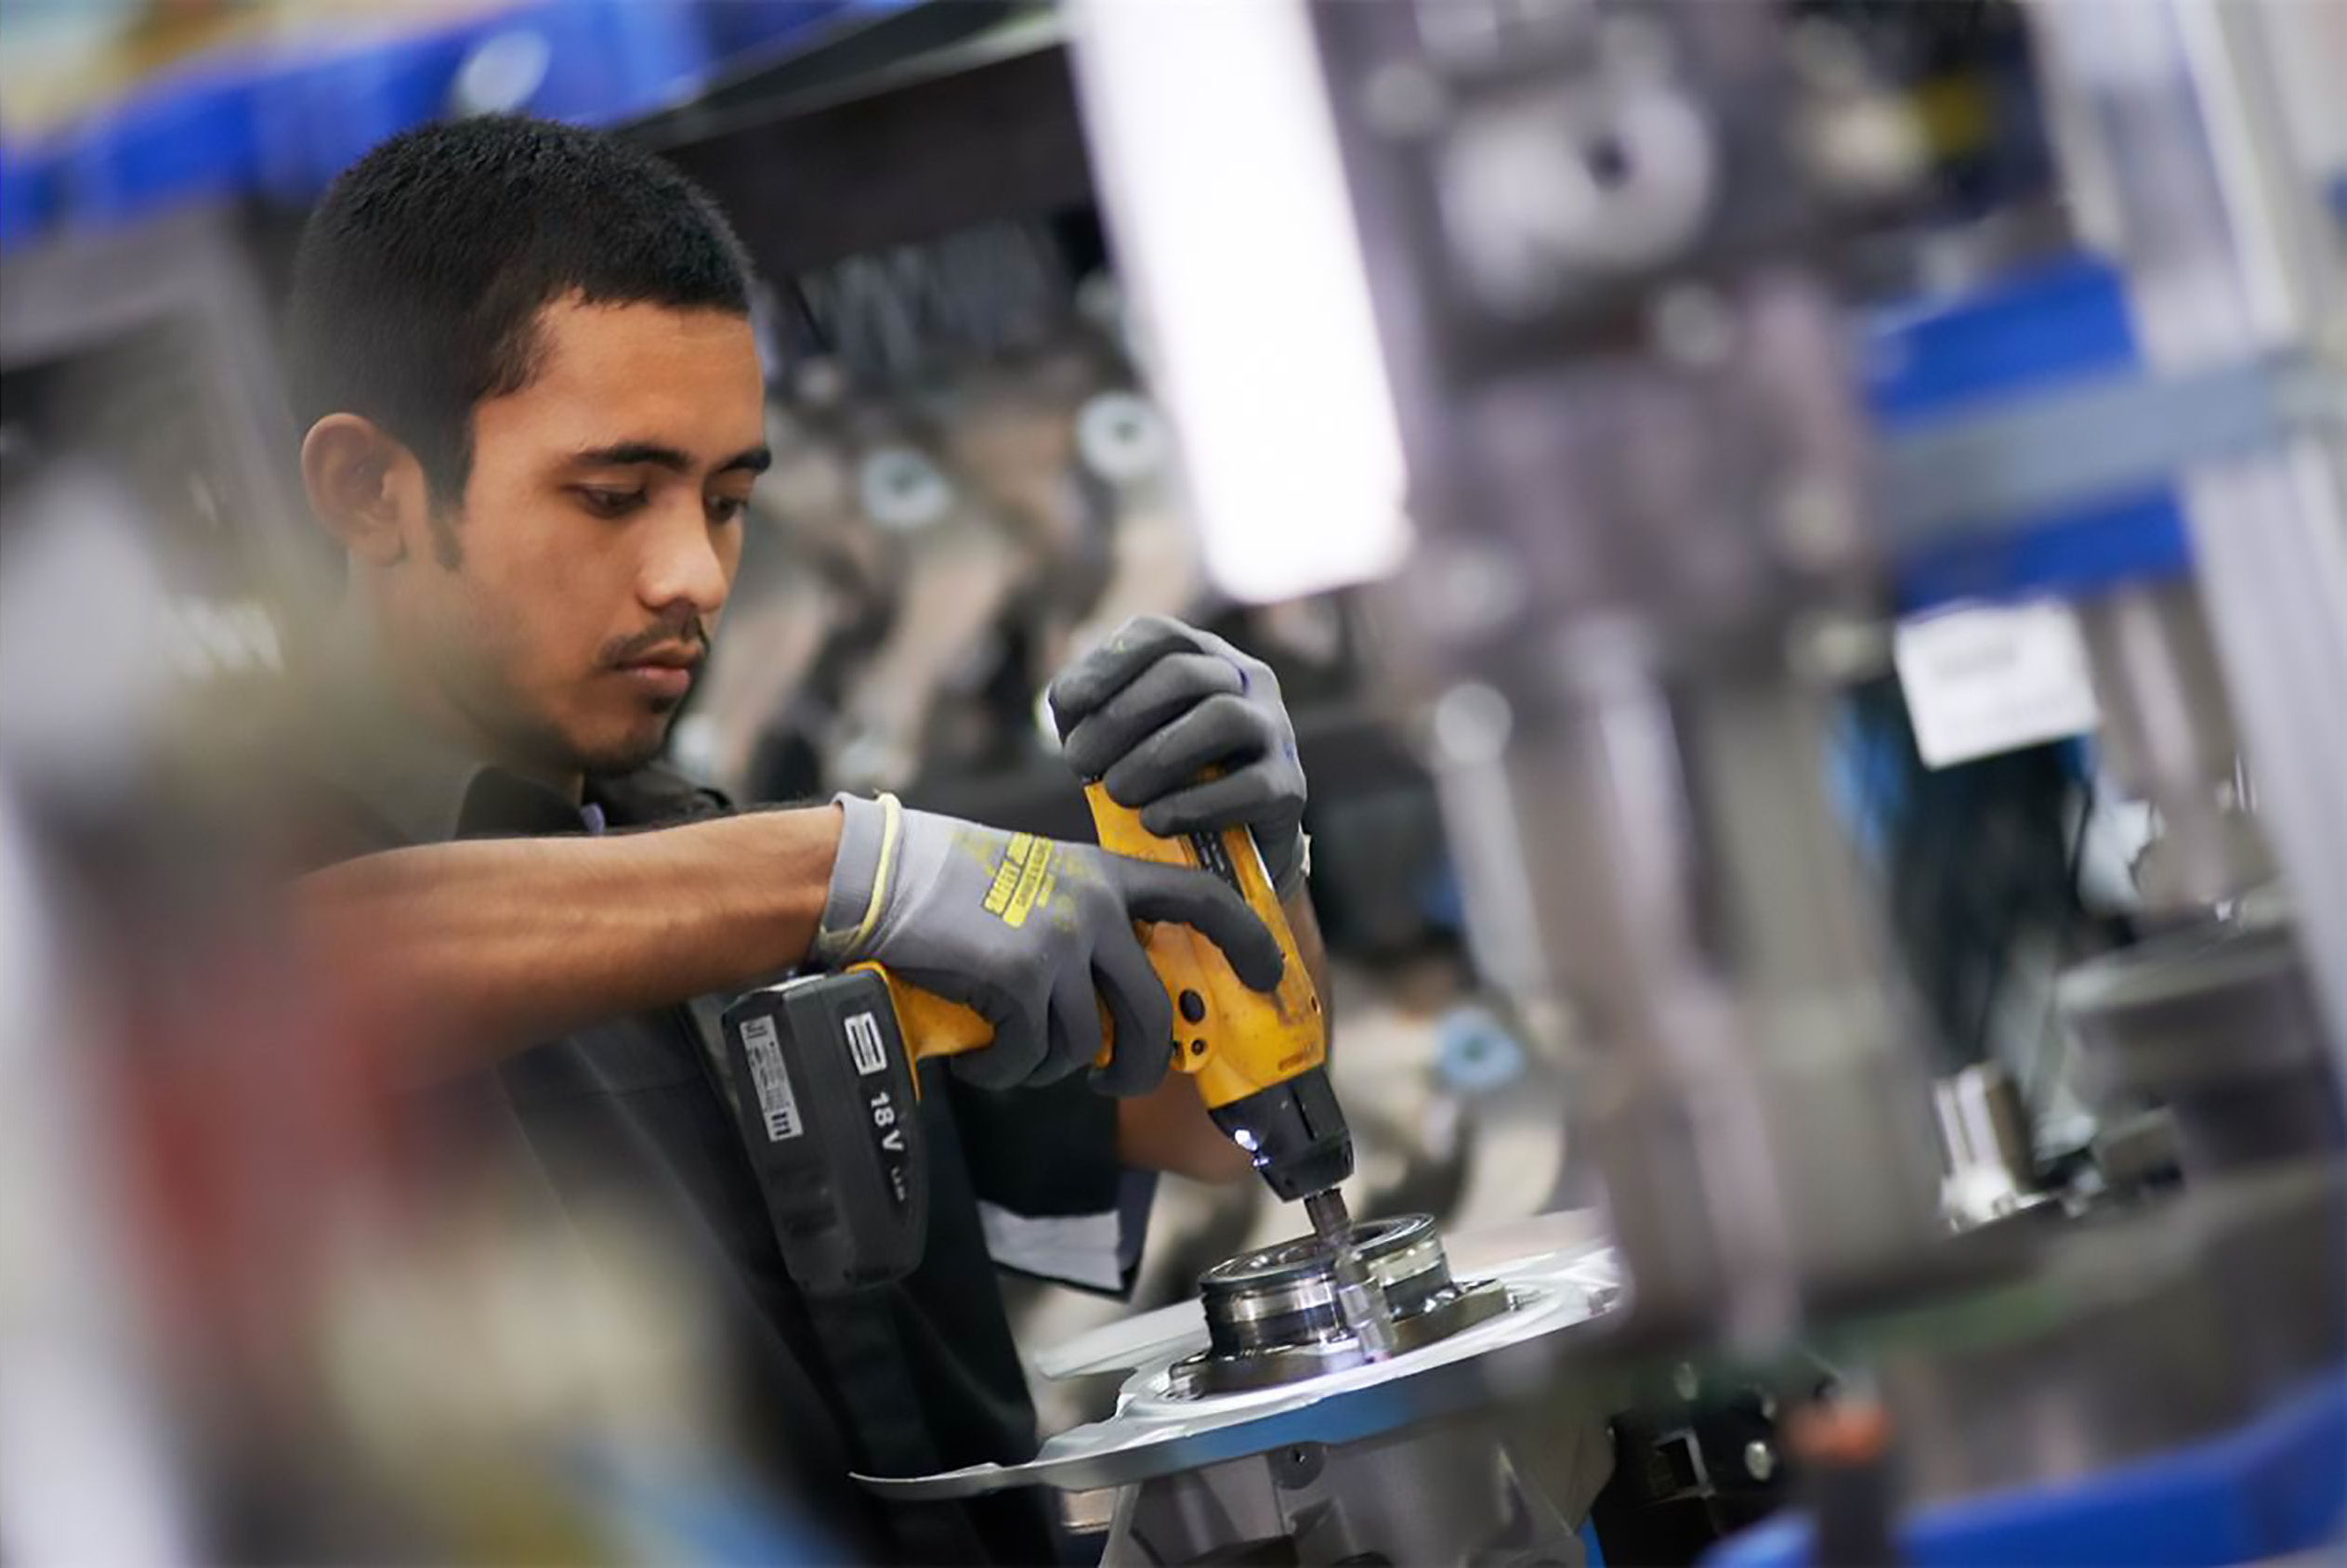 ZF Services UK expands its Off-Highway Service Centre capacity to reflect growing market demand